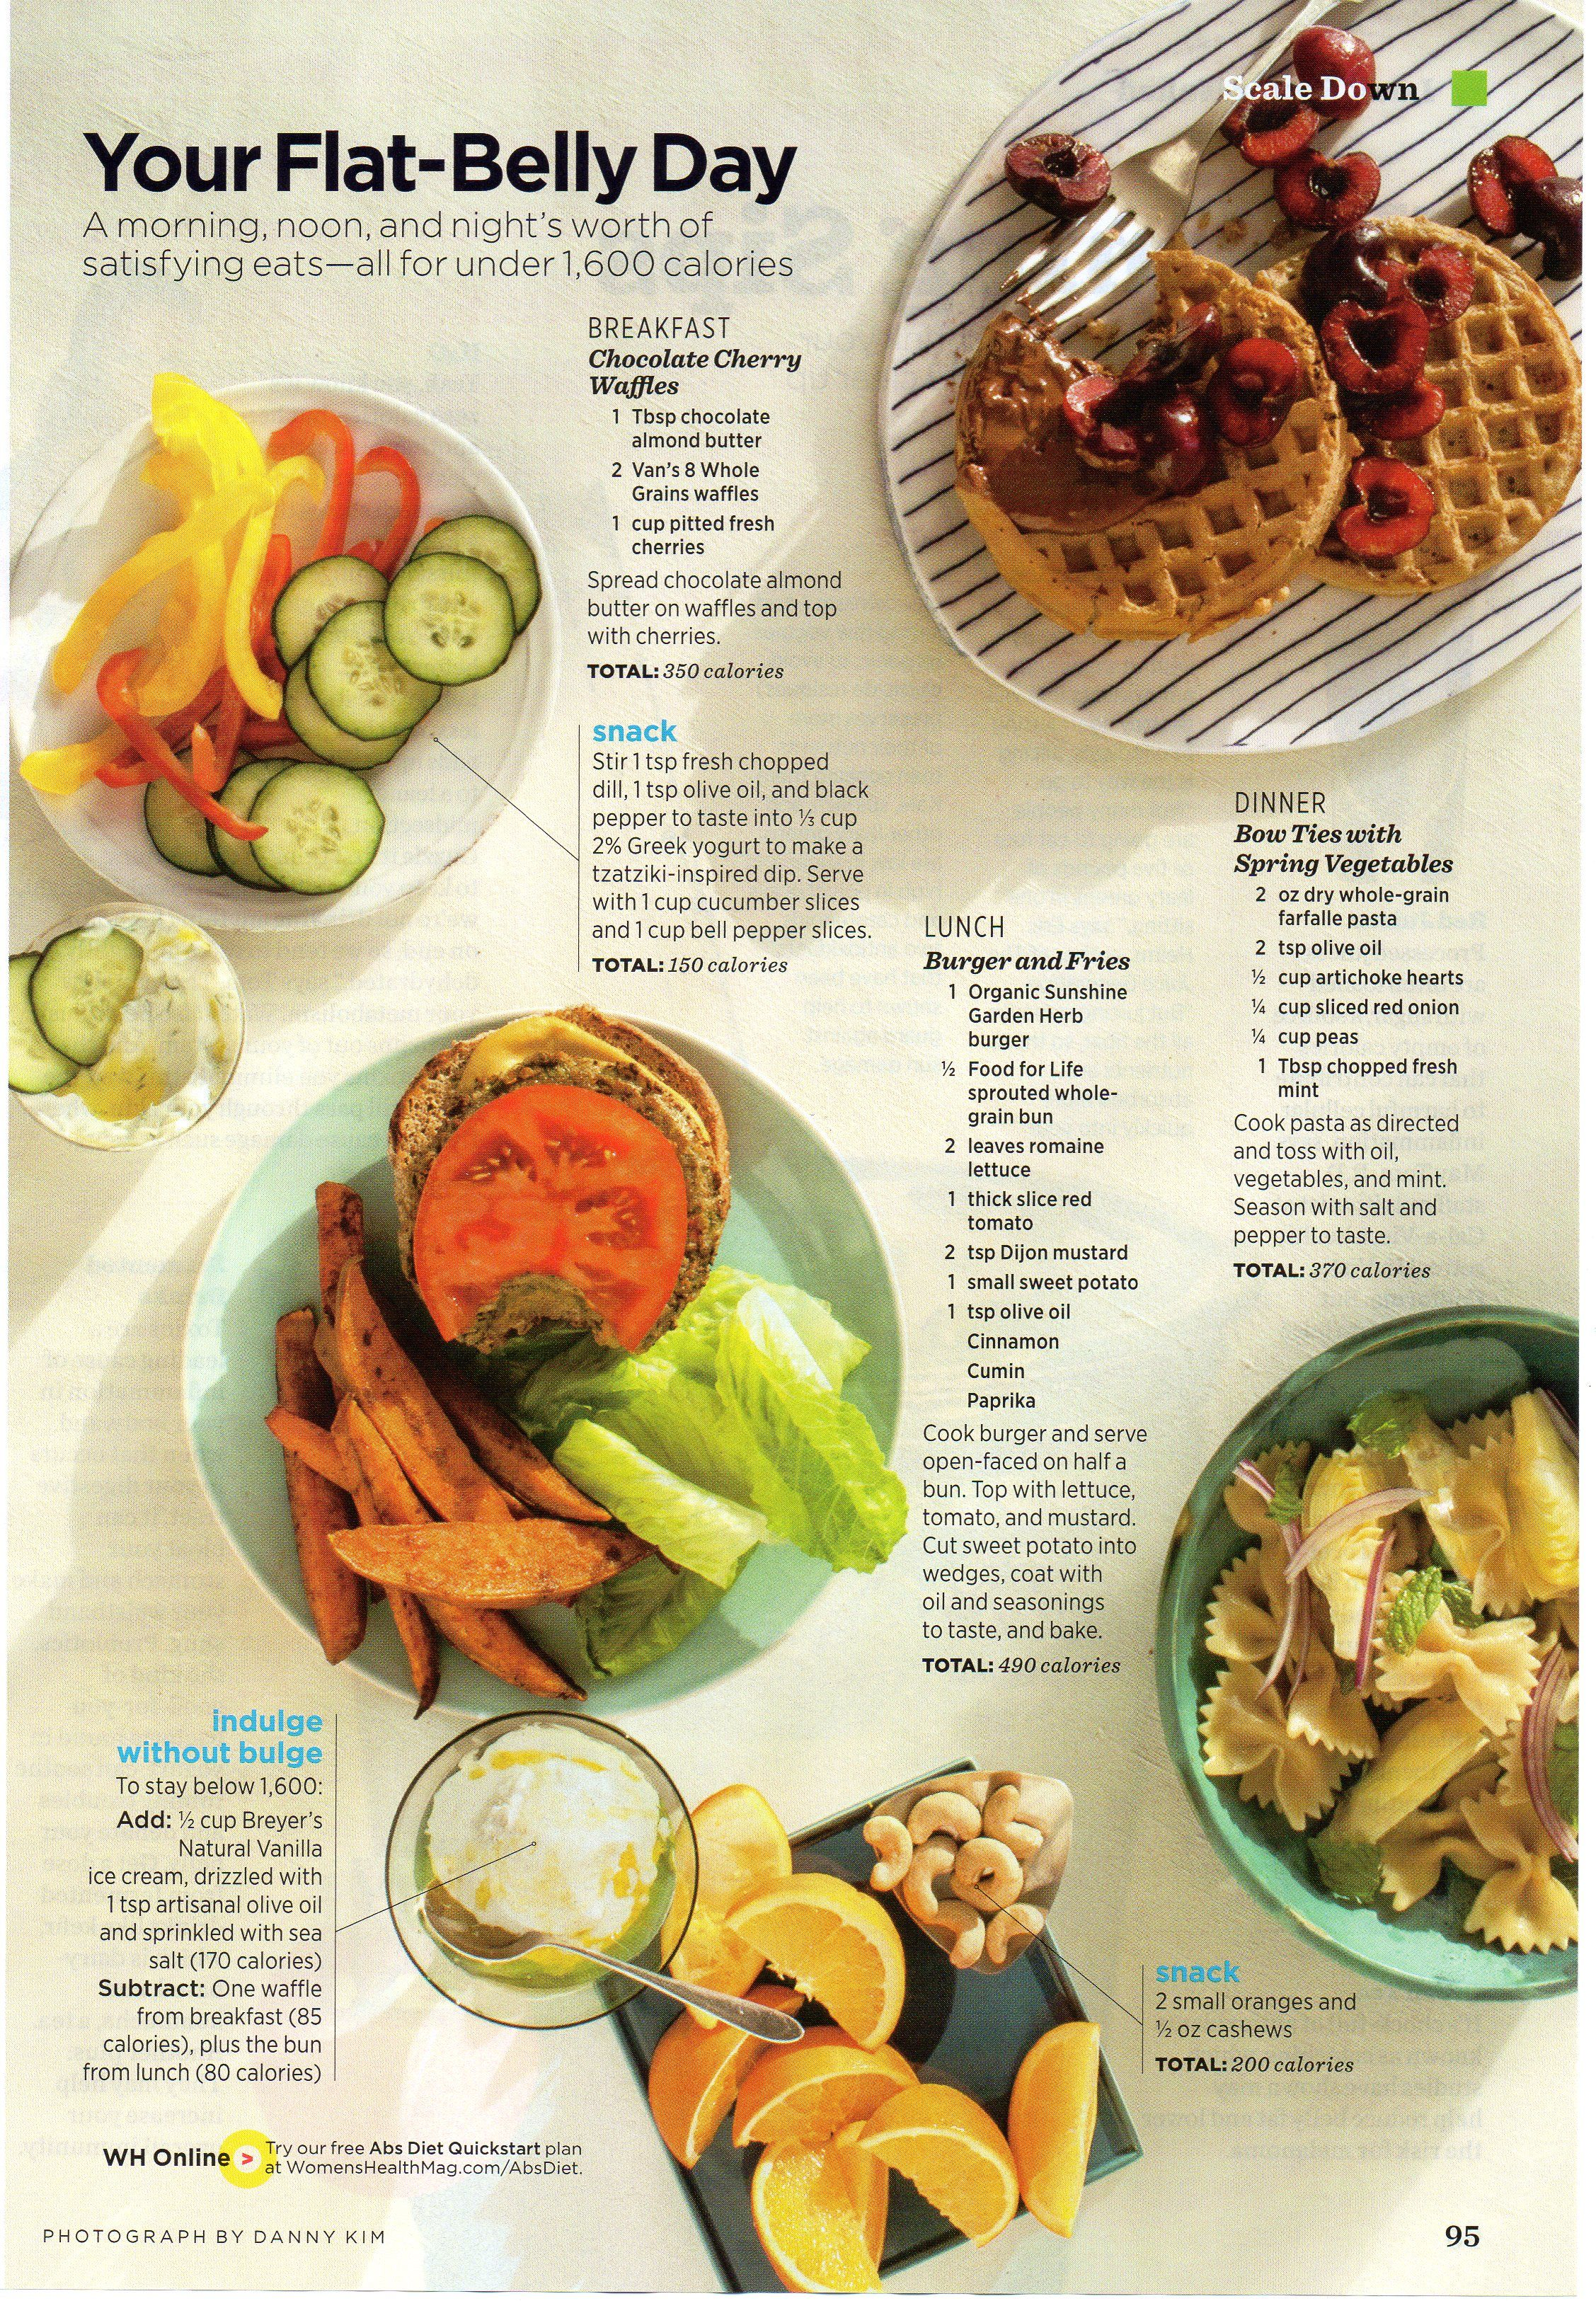 Flat Belly Day meals (With images) Flat belly foods